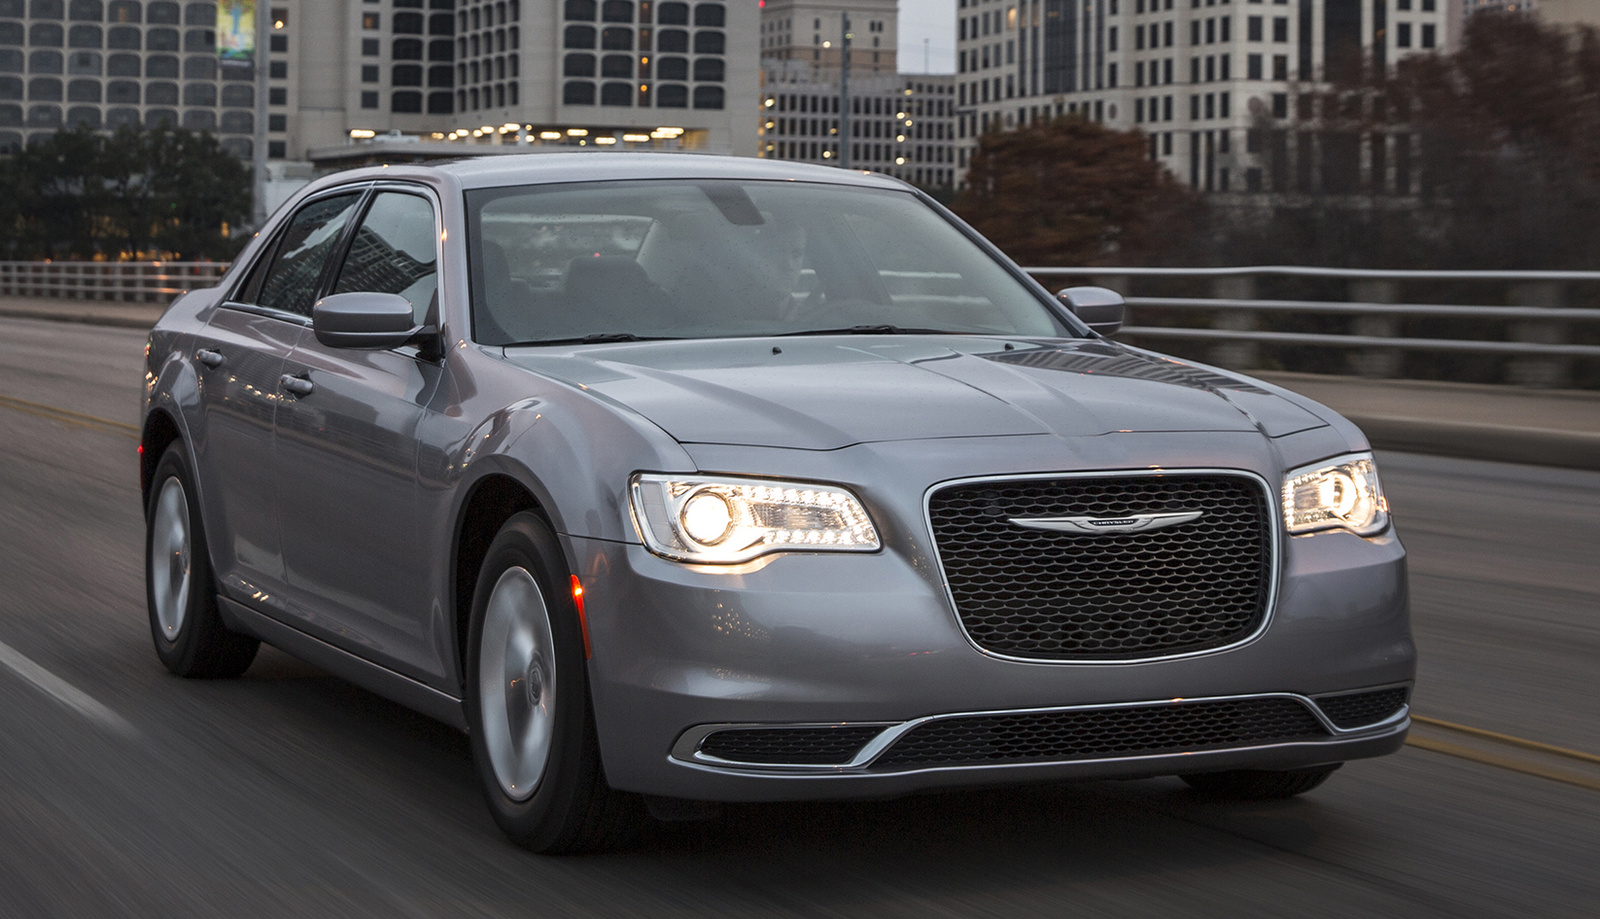 2016 Chrysler 300 #10